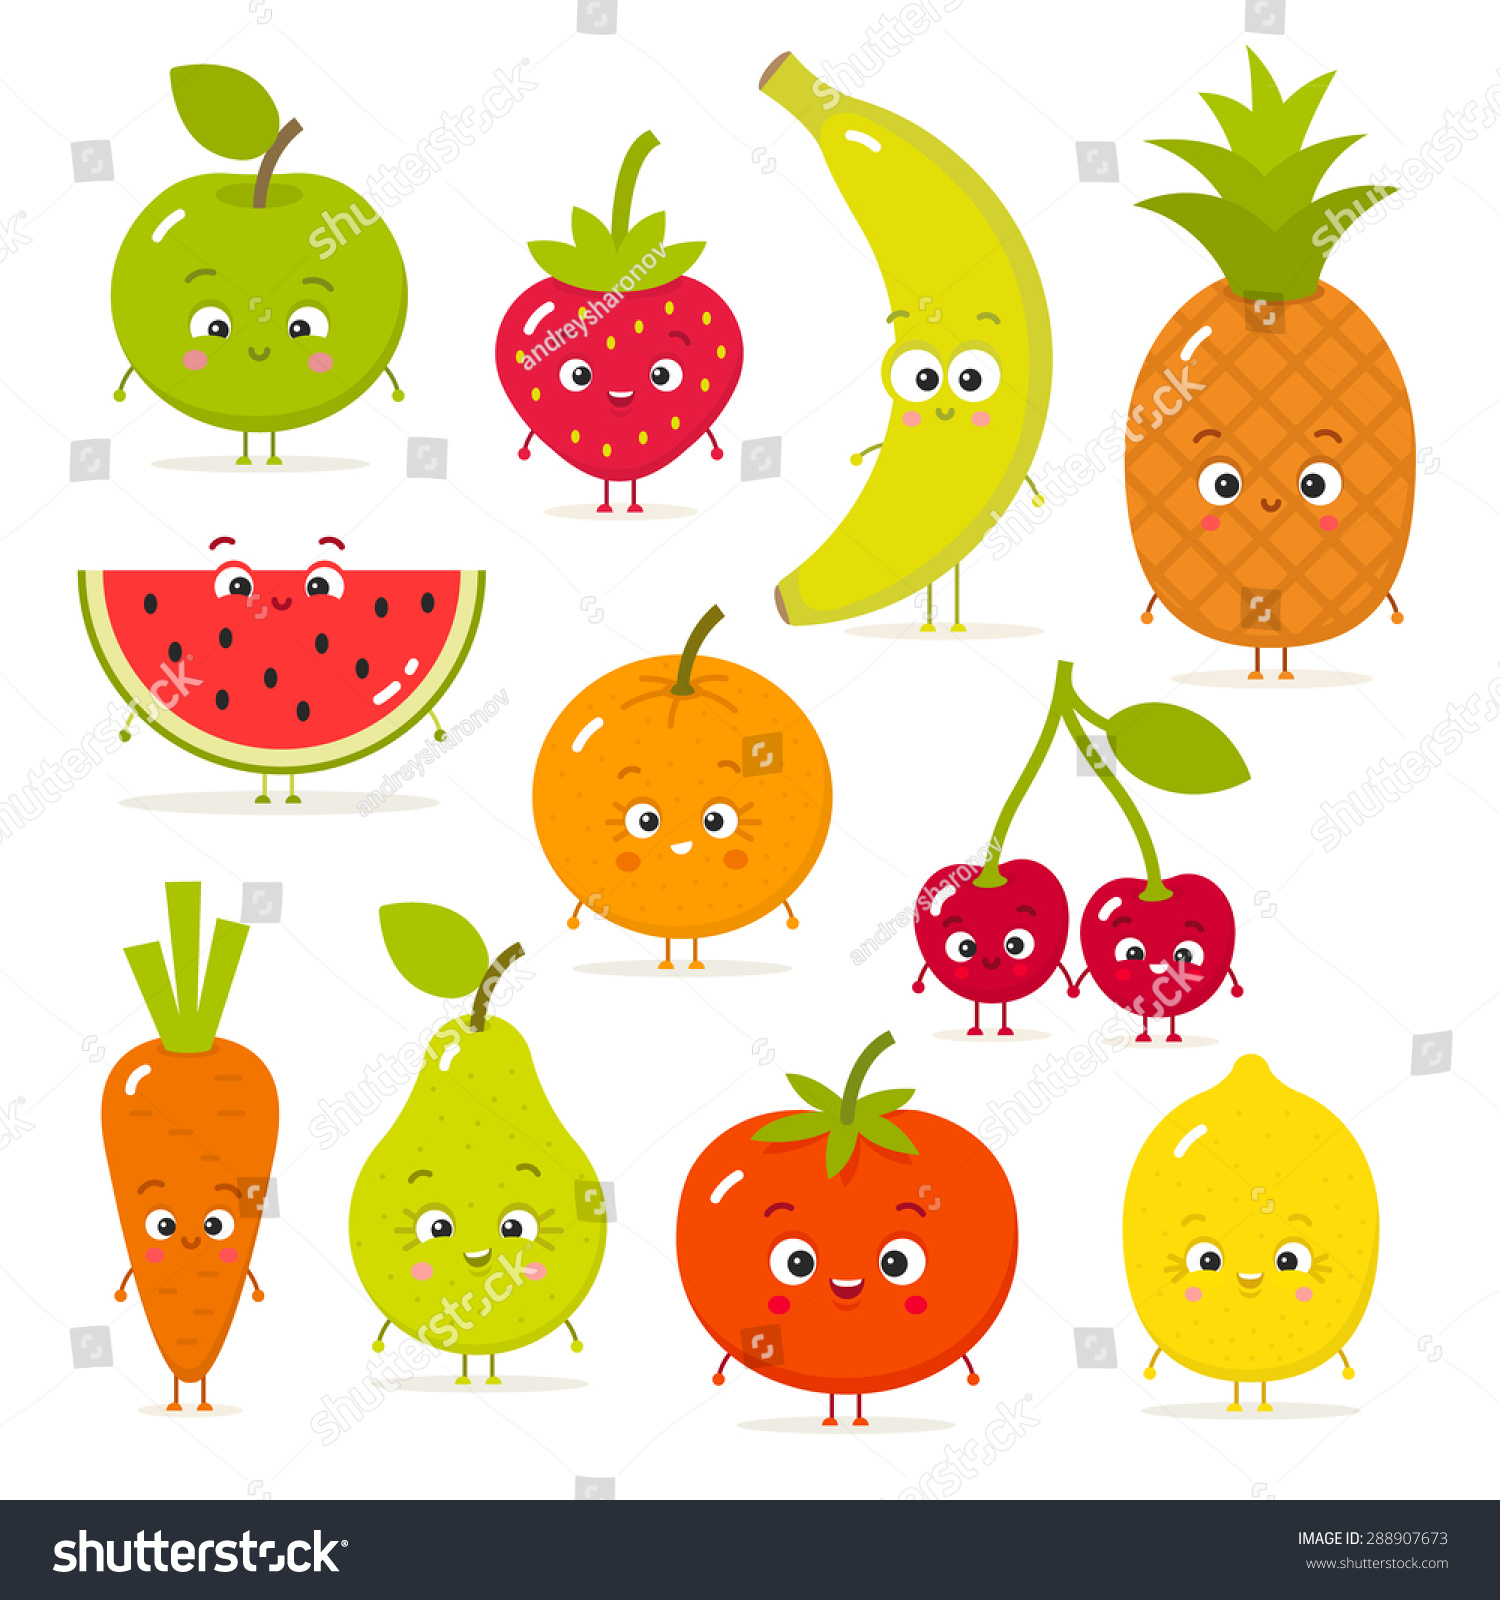 Cartoon Fruits Vegetables Eyes Flat Style Stock Vector